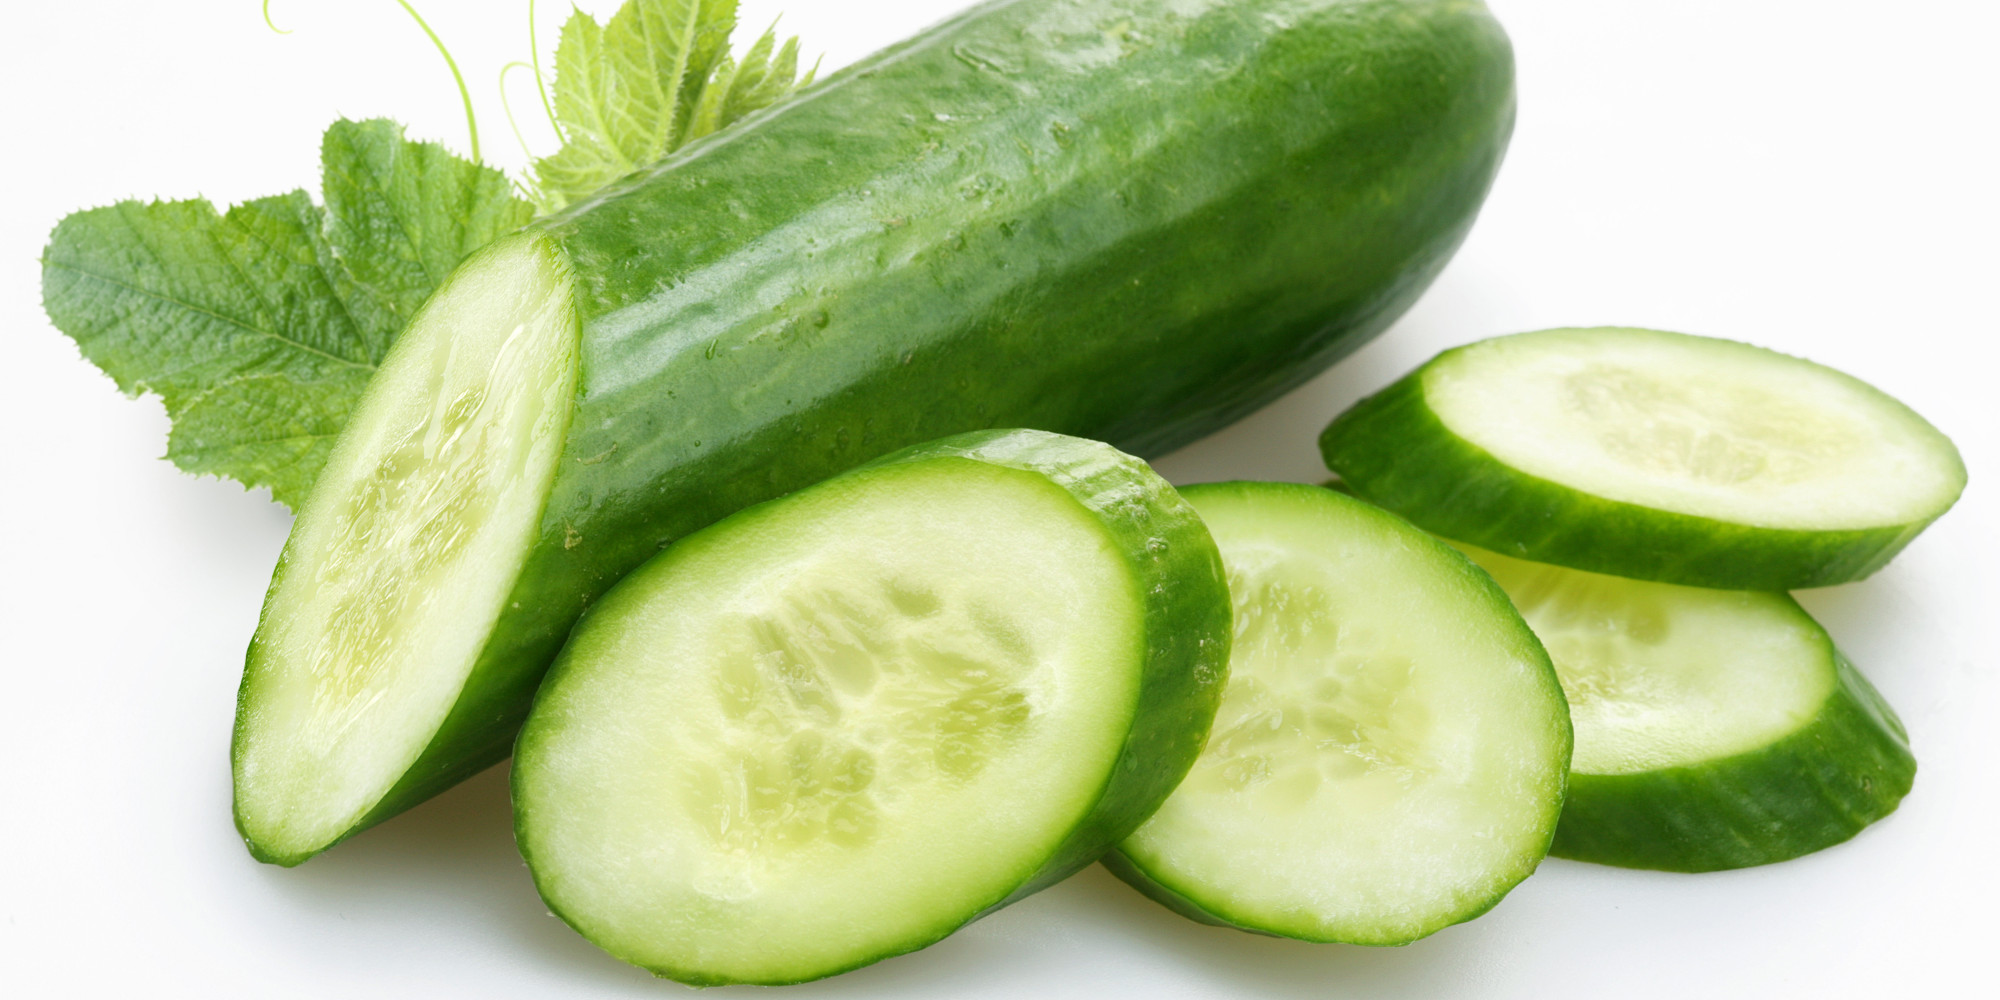 Cucumber wallpapers